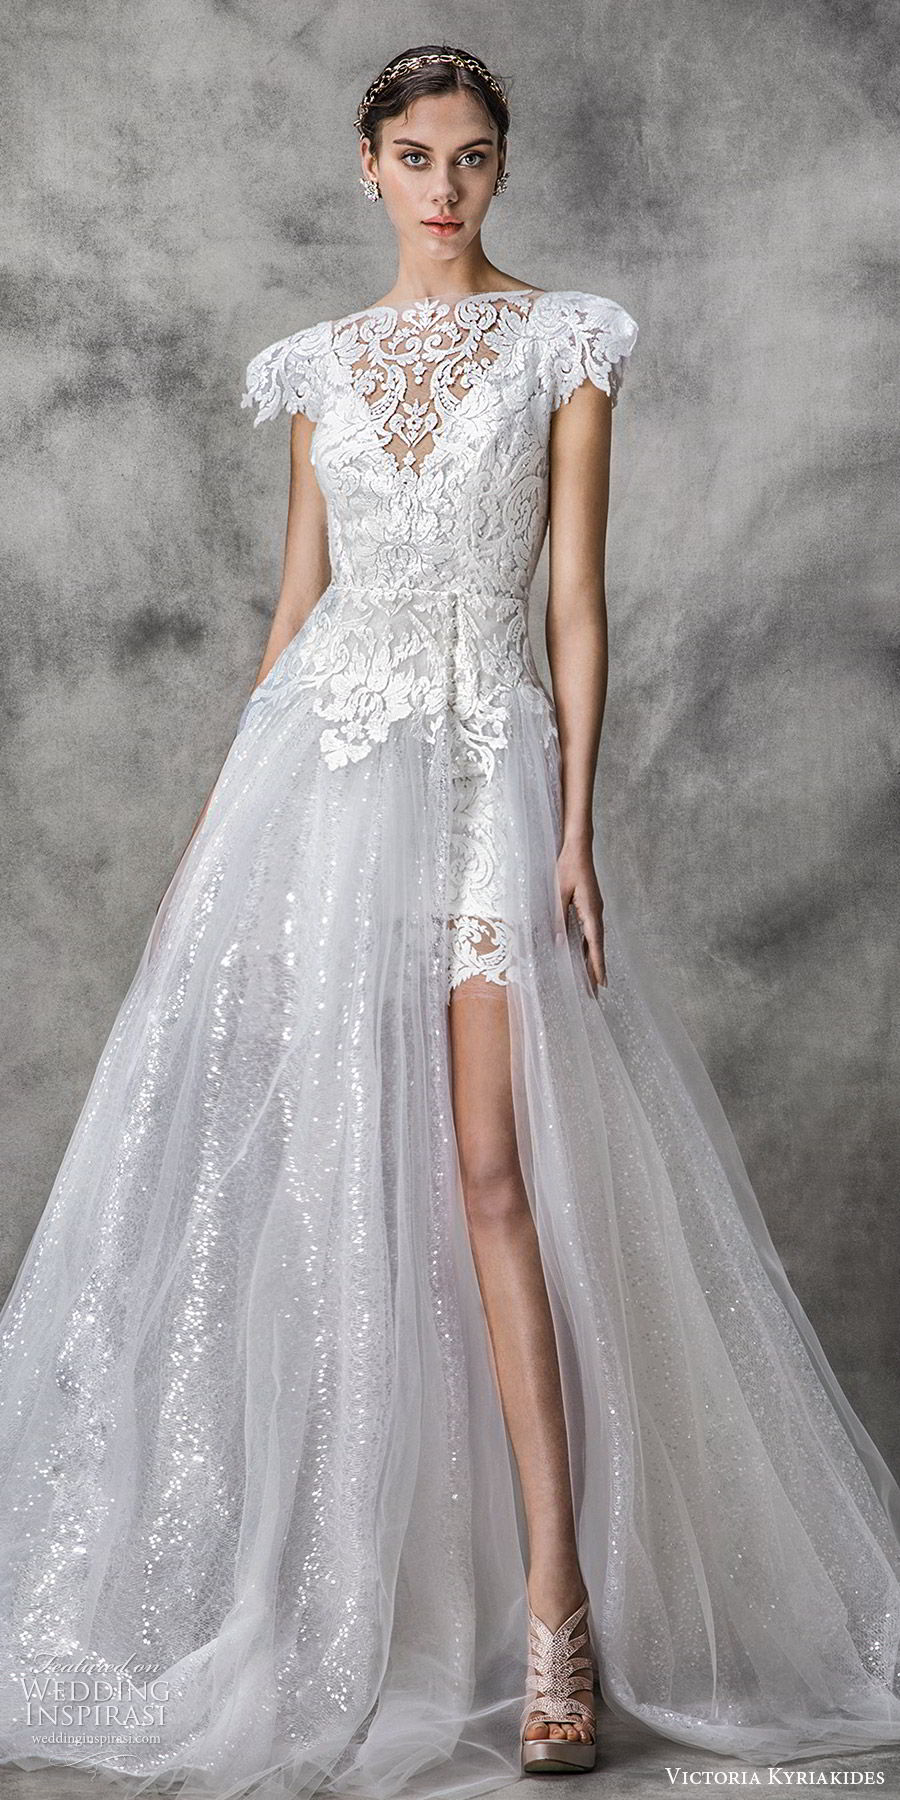 victoria kyriakides spring 2020 bridal short puff sleeves bateau neckline slit skirt fully embellished lace a line ball gown wedding dress (5) chapel train modern romantic mv